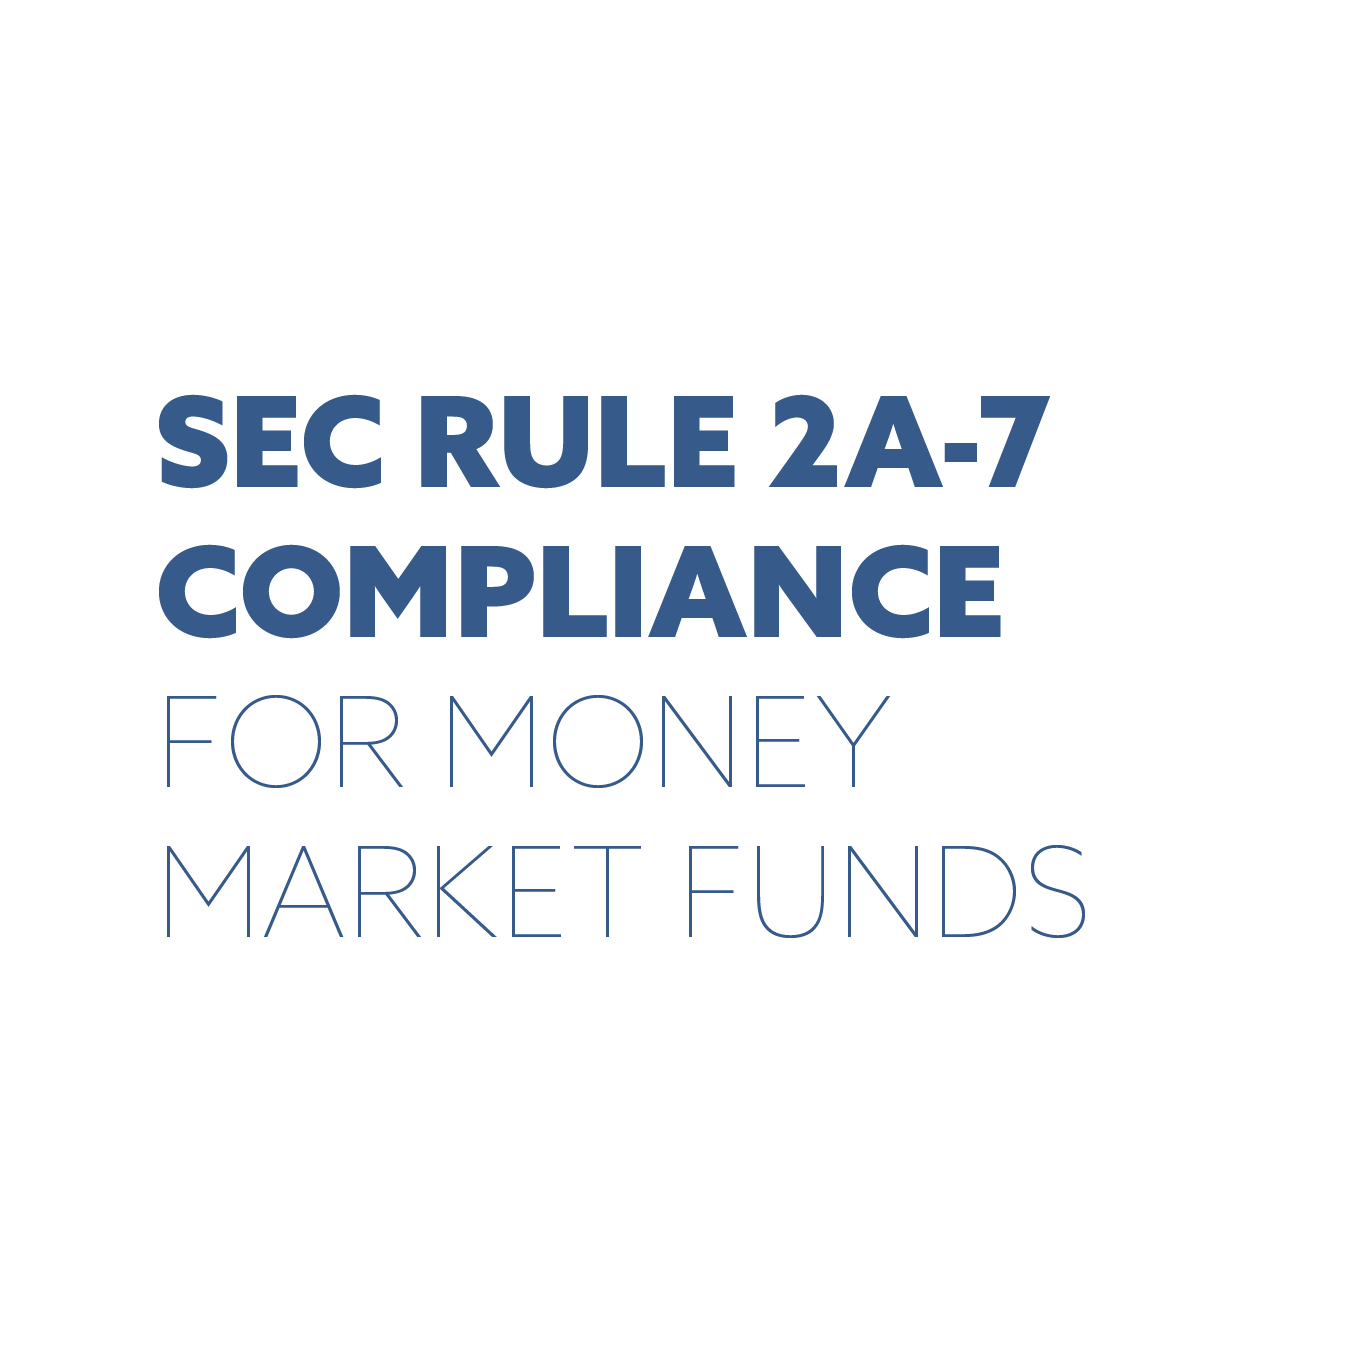 attribute_compliance_sec.png